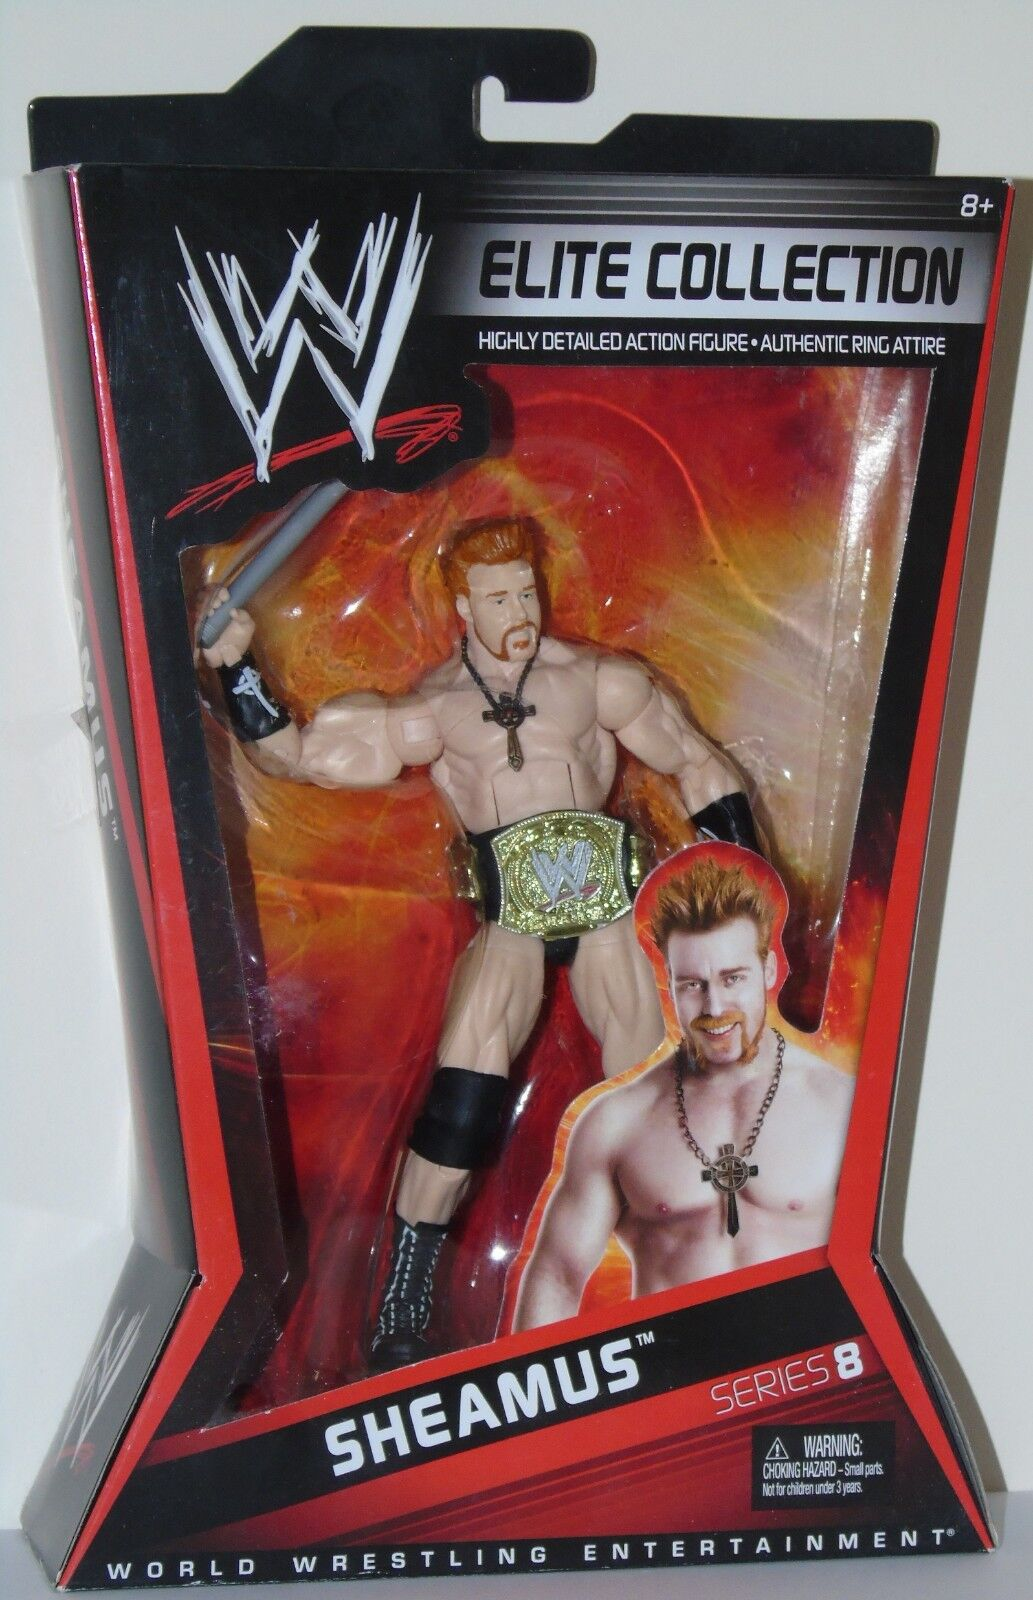 SHEAMUS FIGURE WWE ELITE WRESTLING SERIES 8 WITH TITLE BELT